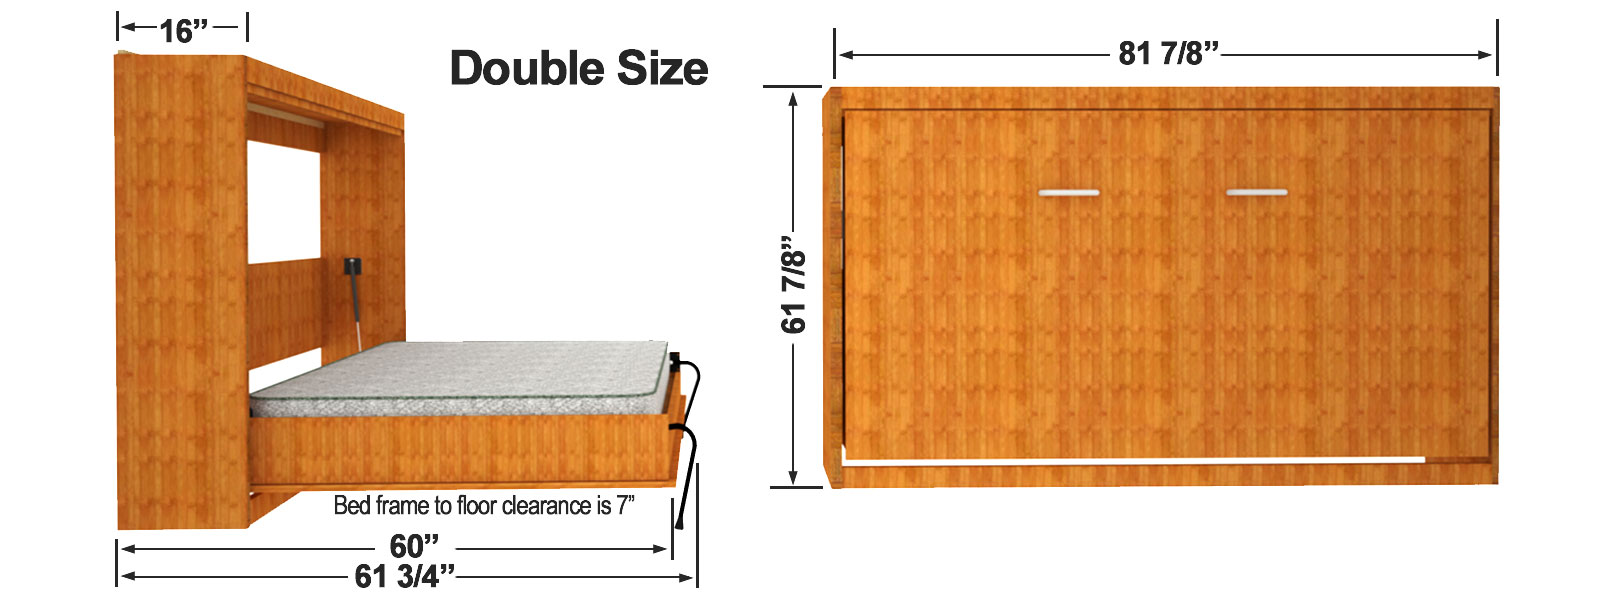 Murphy door plans one way to be greener about the design for Horizontal house plans